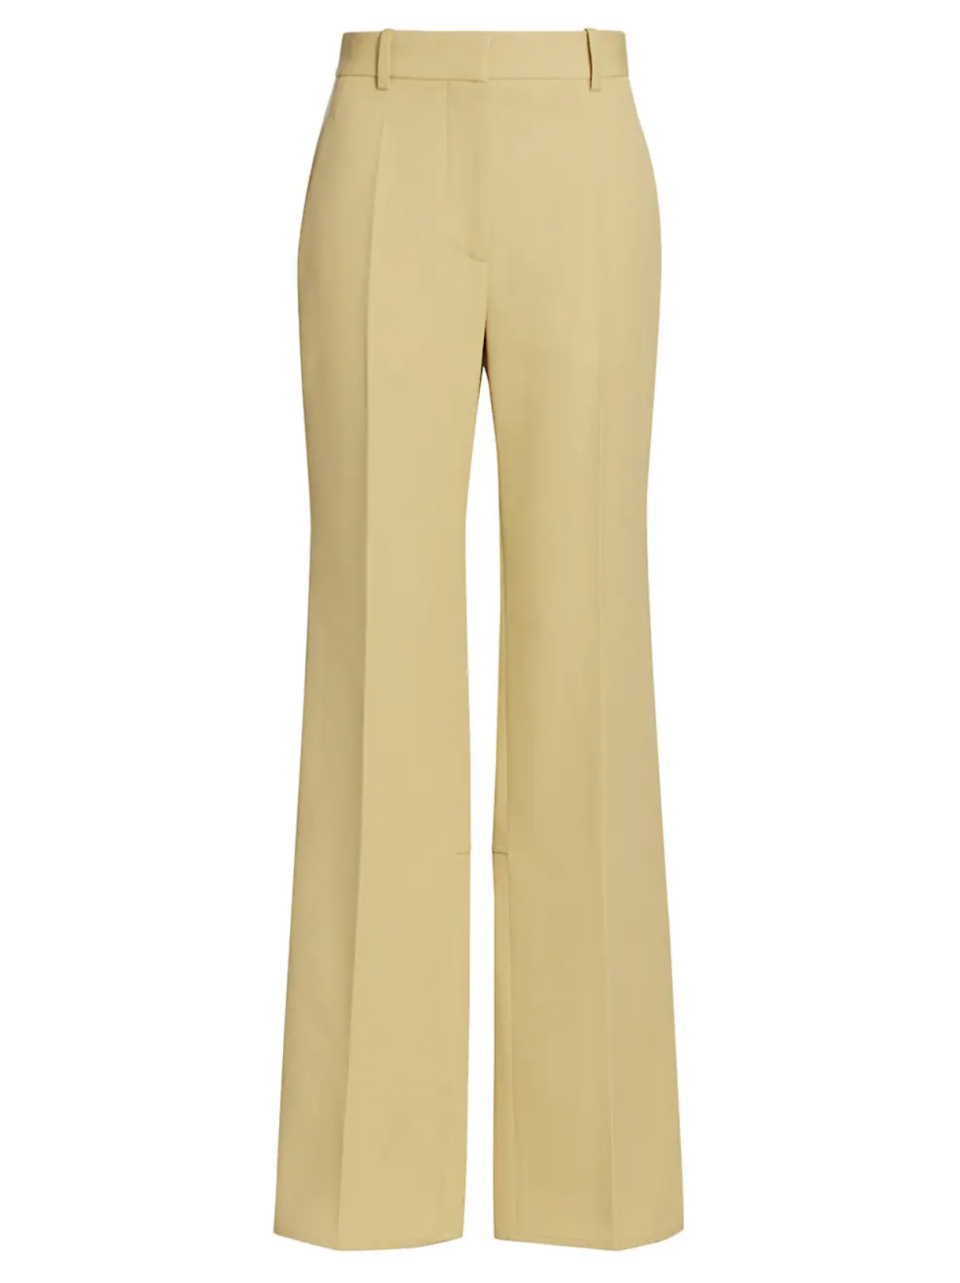 """<p><strong>Victoria Beckham</strong></p><p>Saks Fifth Avenue</p><p><a href=""""https://go.redirectingat.com?id=74968X1596630&url=https%3A%2F%2Fwww.saksfifthavenue.com%2Fproduct%2Fvictoria-beckham-split-hem-straight-leg-trousers-0400014198668.html&sref=https%3A%2F%2Fwww.harpersbazaar.com%2Ffashion%2Ftrends%2Fg37136850%2Fsaks-fifth-avenue-designer-sale-fashion%2F"""" rel=""""nofollow noopener"""" target=""""_blank"""" data-ylk=""""slk:Shop Now"""" class=""""link rapid-noclick-resp"""">Shop Now</a></p><p><strong><del>$850</del> $340</strong></p><p>""""A return to the office is incomplete without a work wardrobe refresh. These '70s inspired flare pants are at the top of my list.""""—<em>Sierra Mayhew, editorial coordinator</em></p>"""